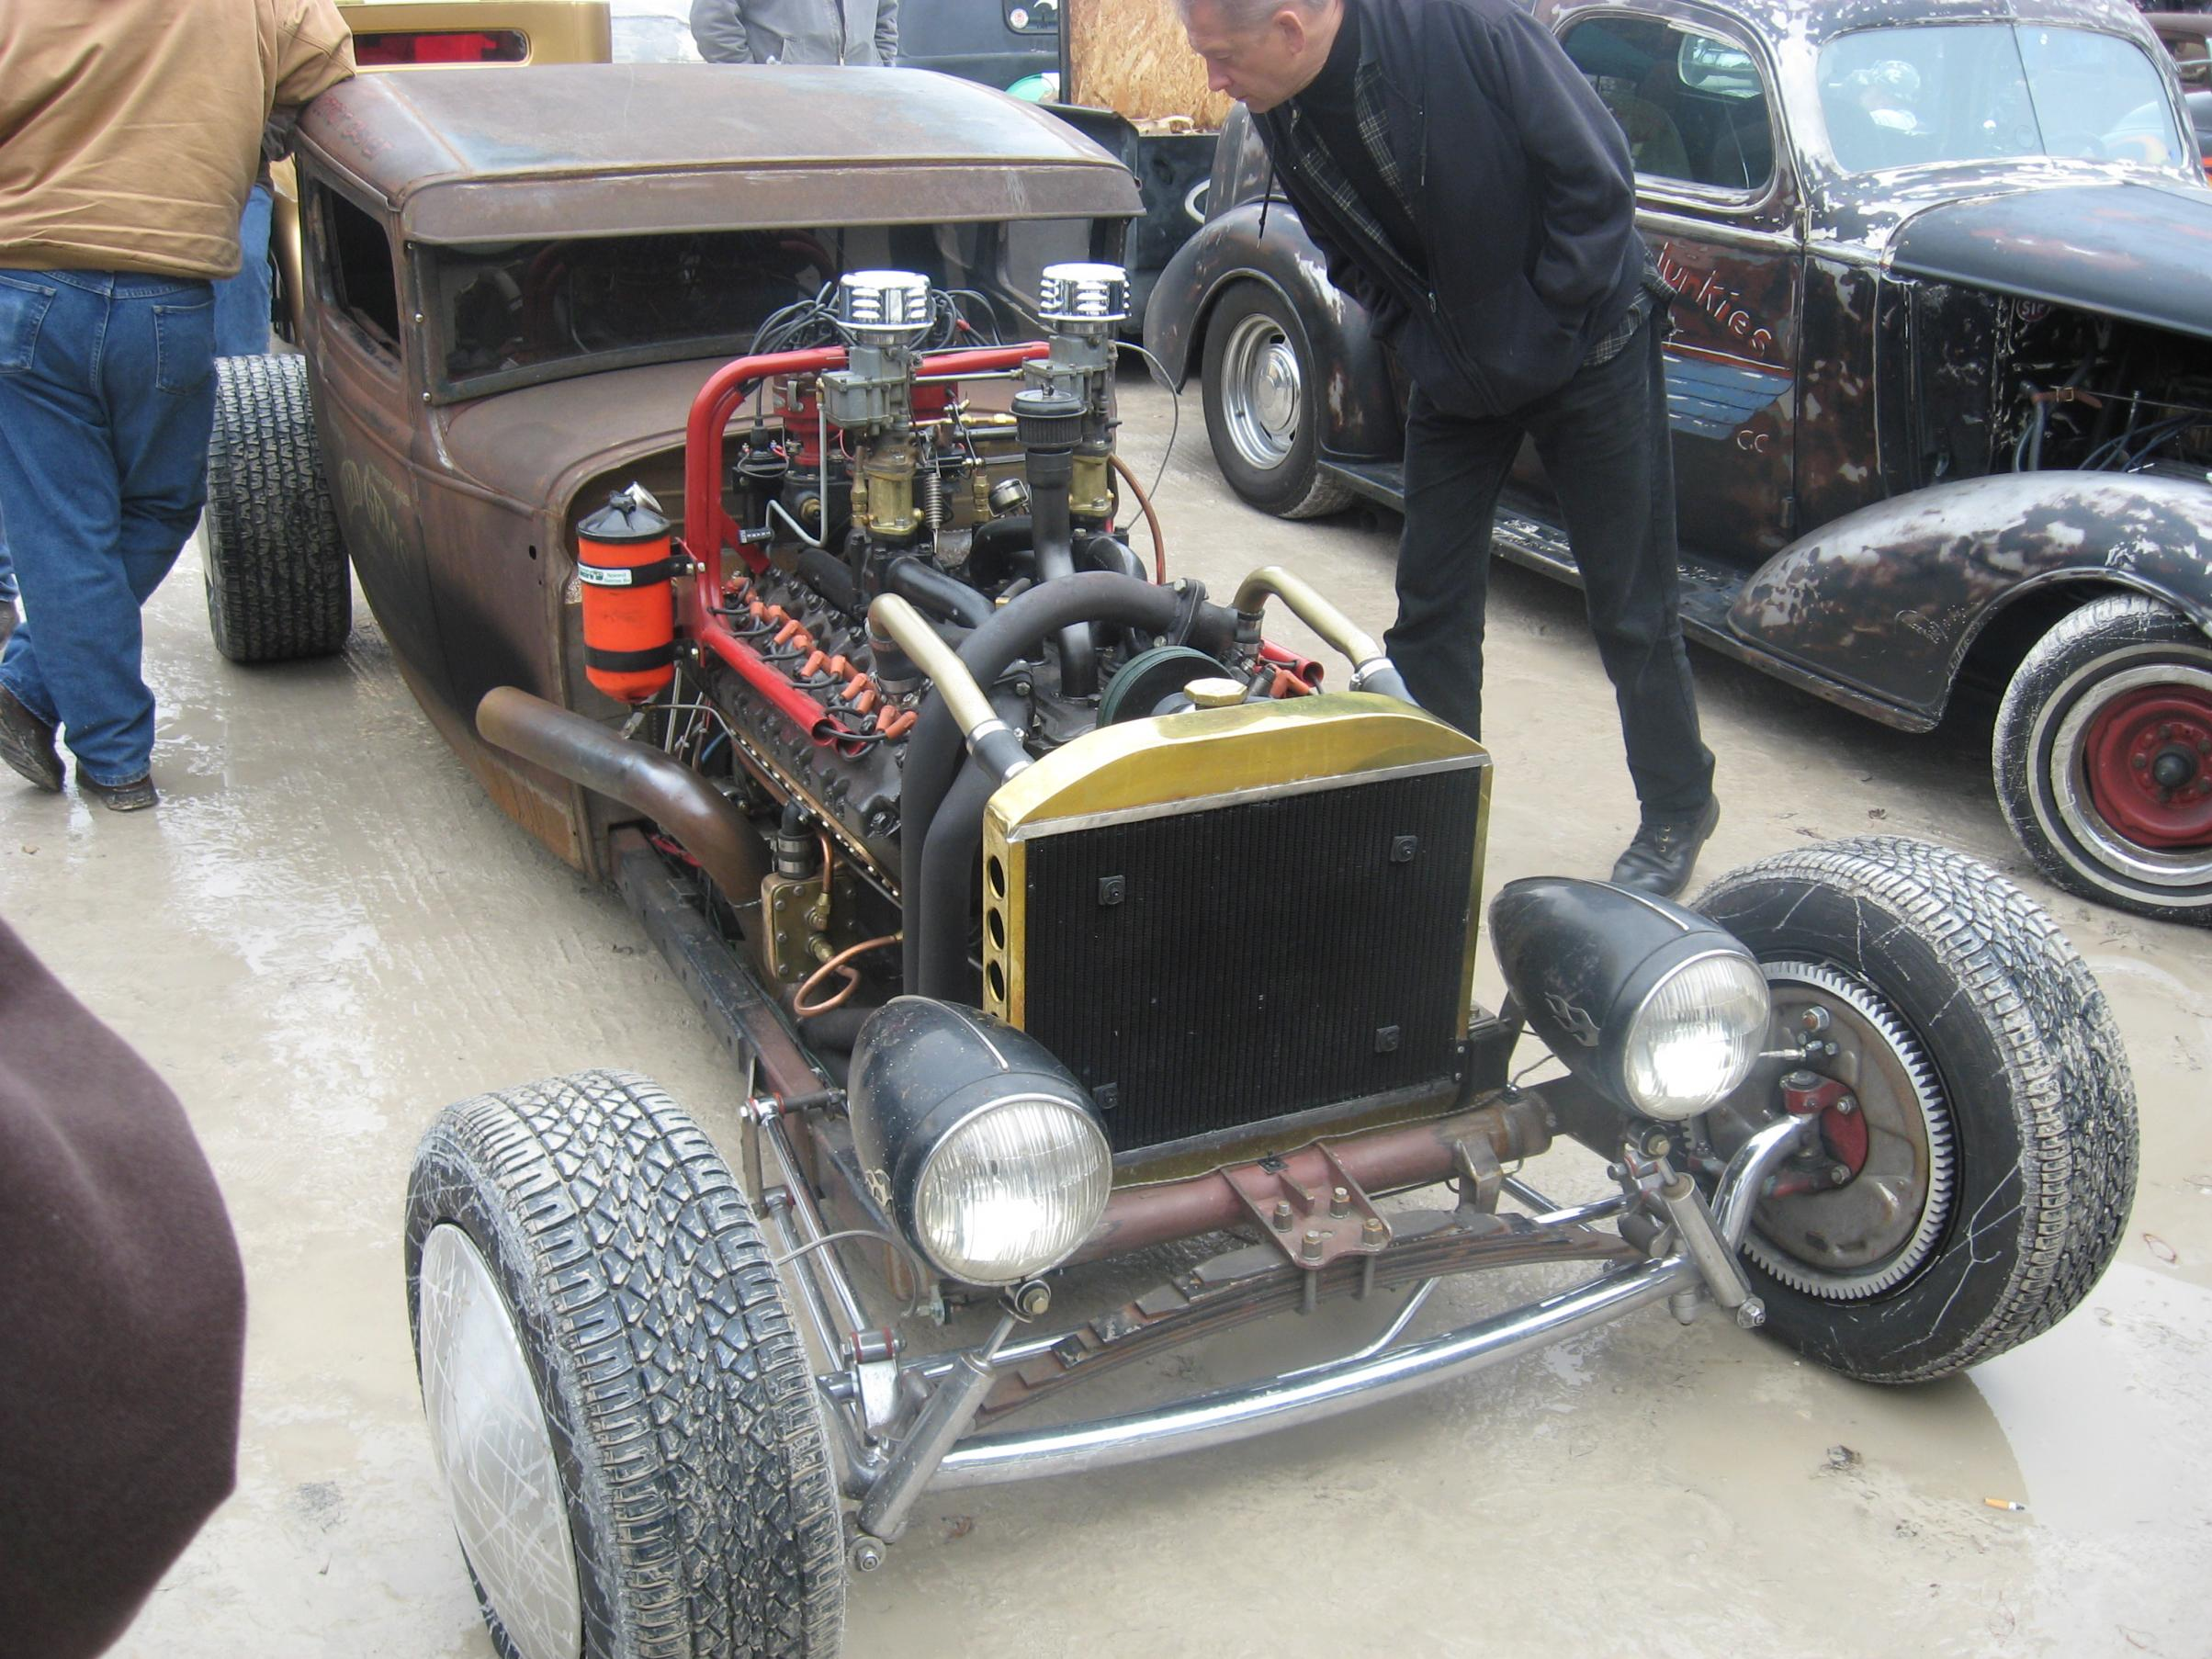 Seagrave V12 rat-rod, shot 7.